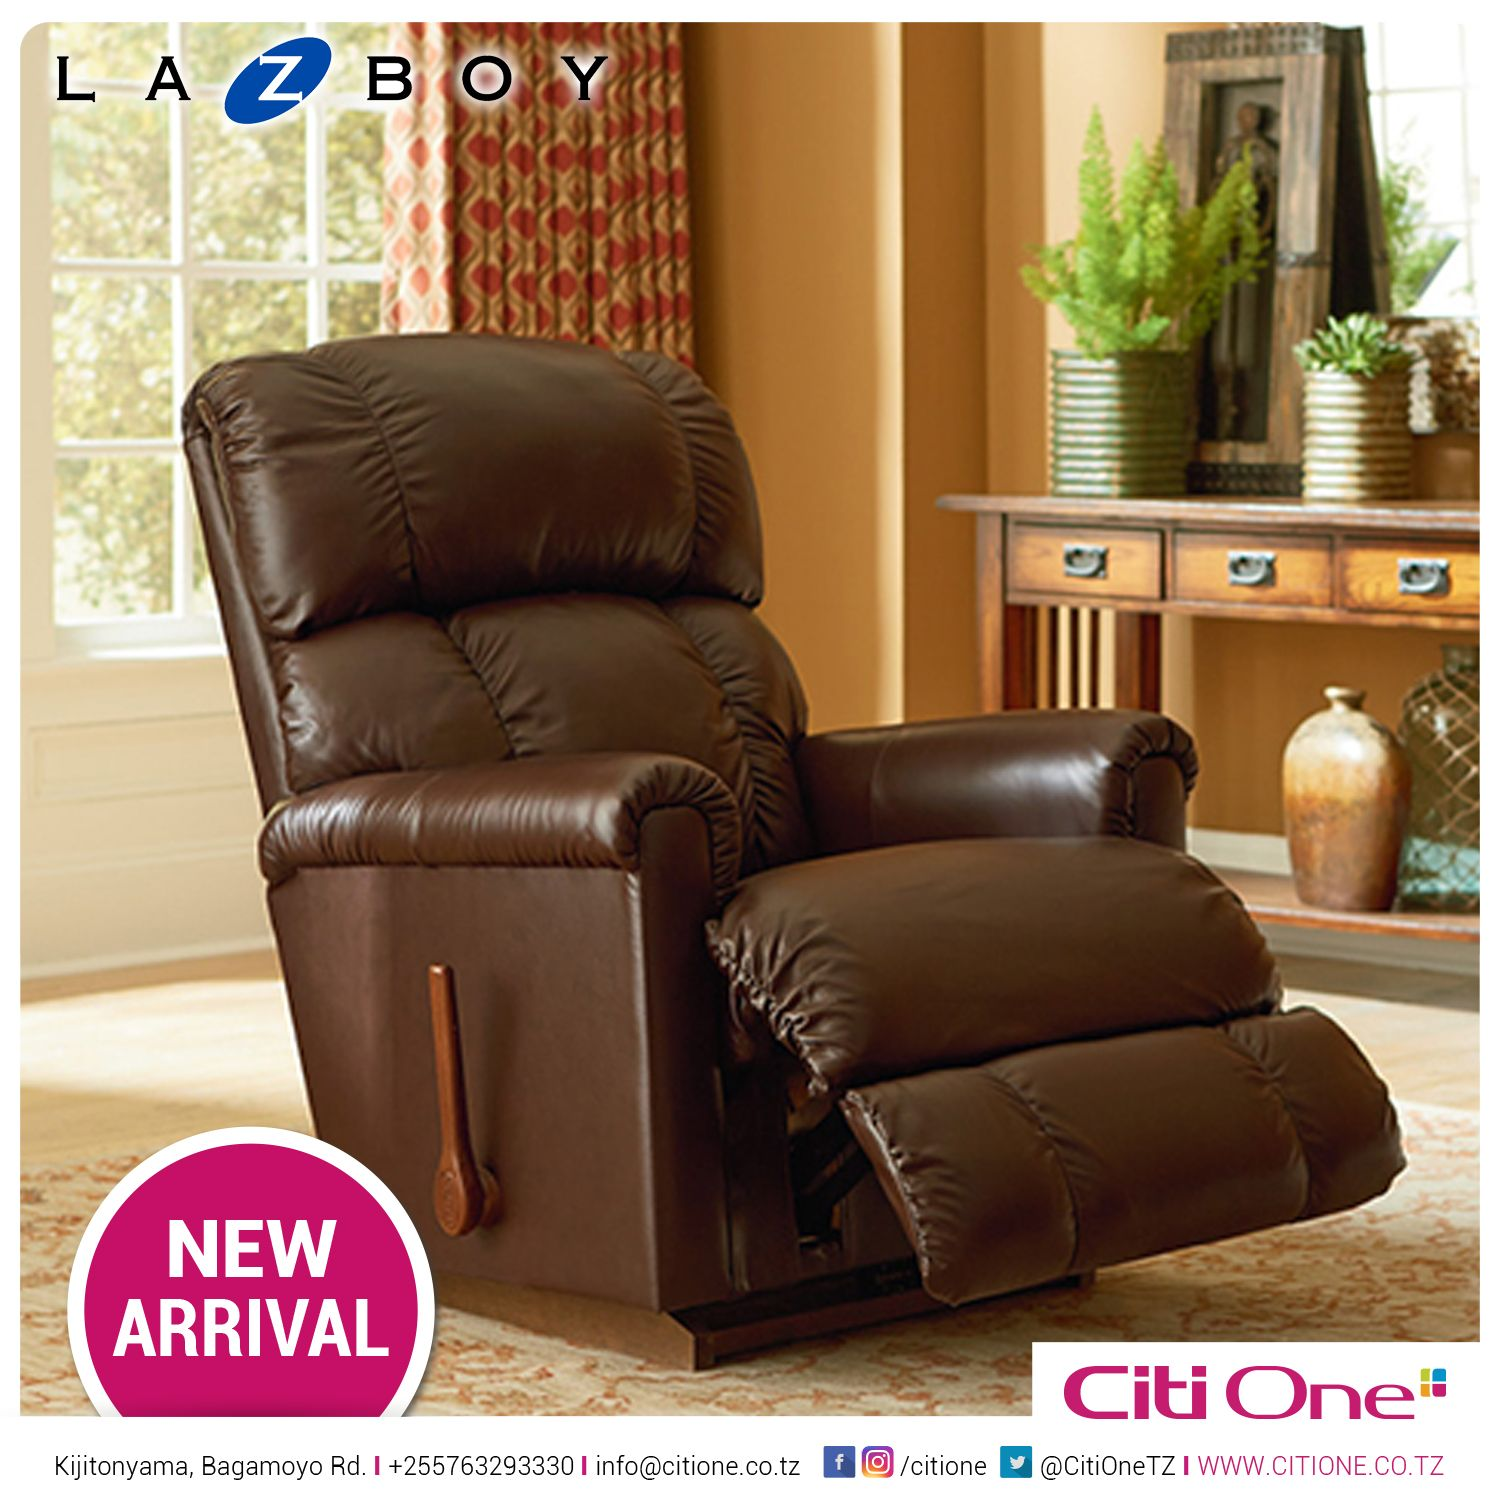 Fabulous Pin By Citione On Citione Products Recliner Rocker Machost Co Dining Chair Design Ideas Machostcouk